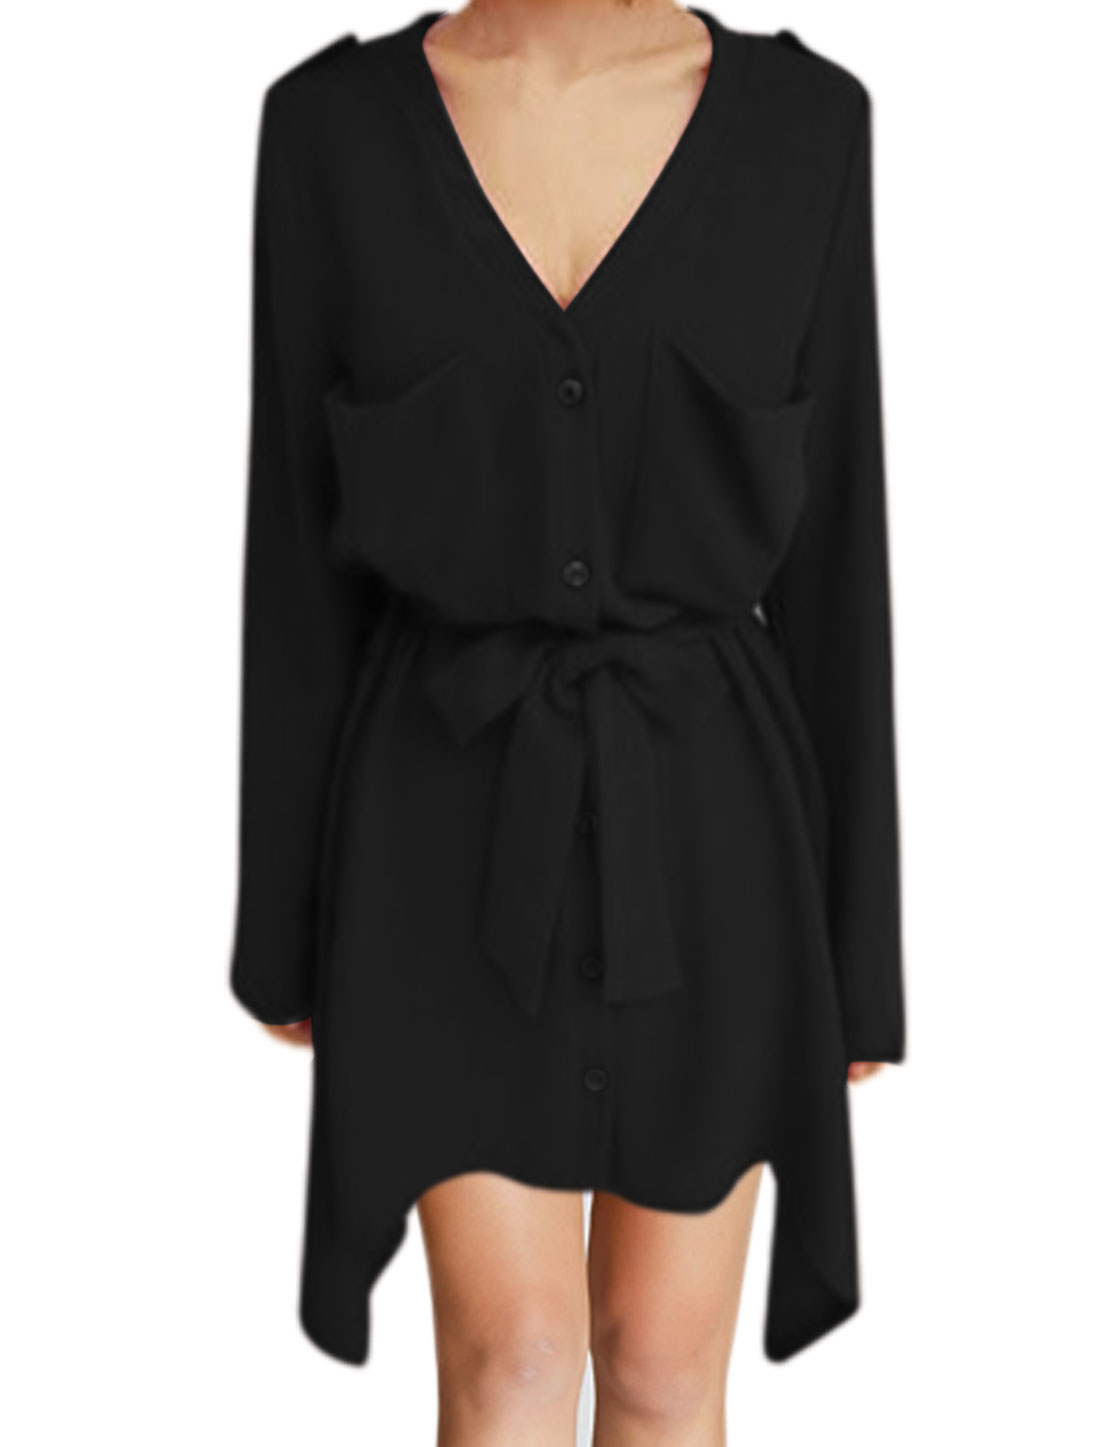 Women Roll Up Sleeves Waist String Asymmetric Shirt Dress Black XS